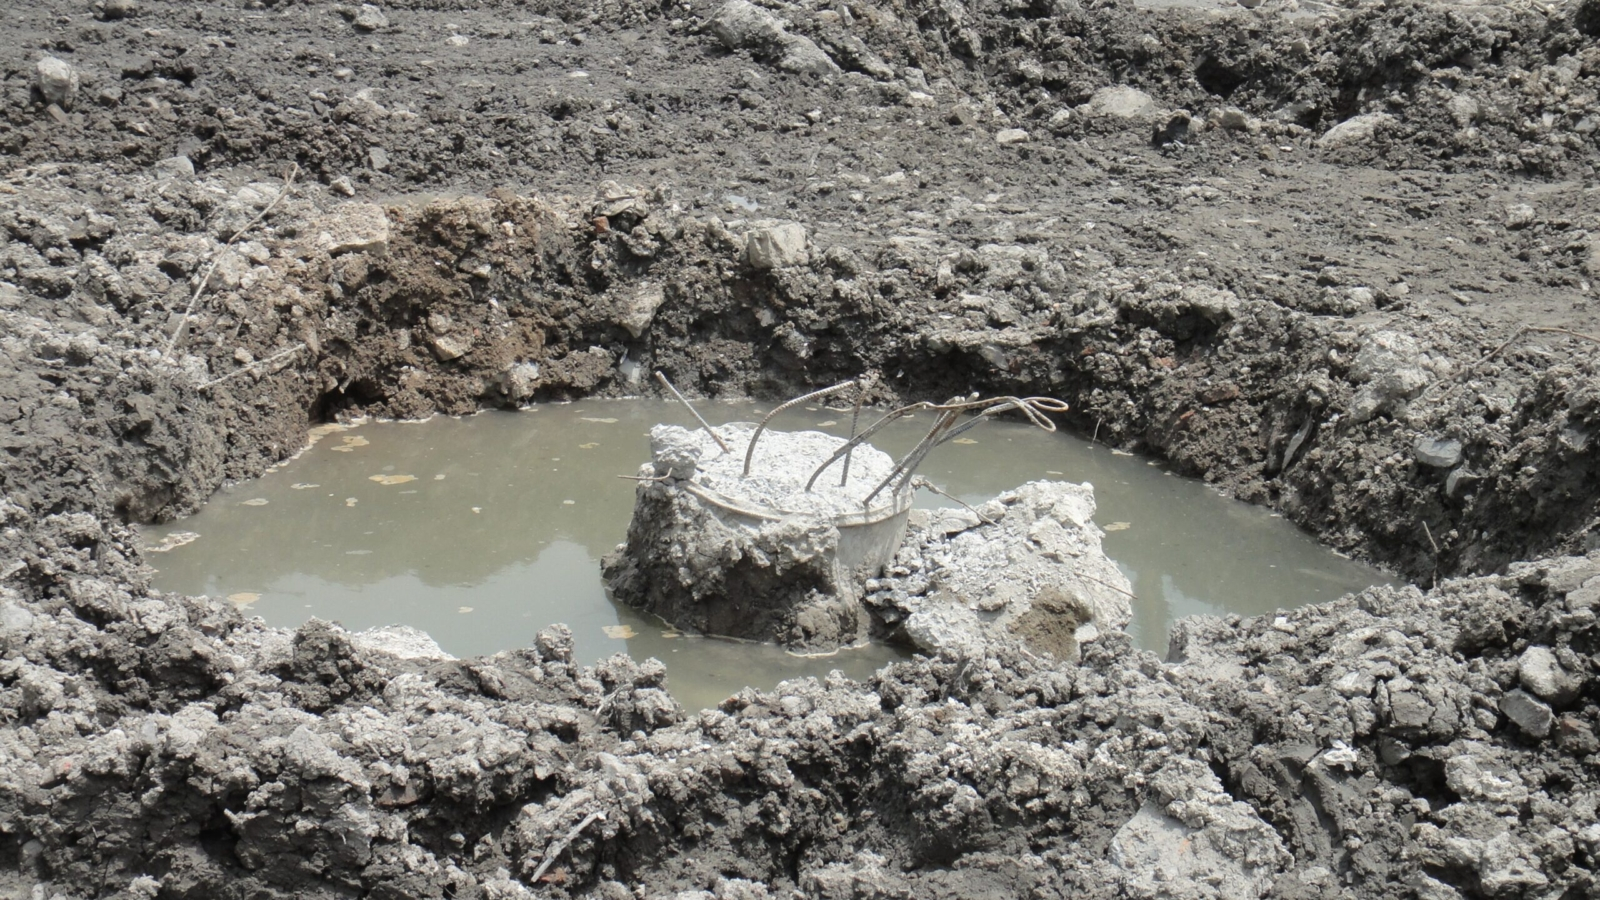 How to Deal with Hazardous Waste in the Soil2